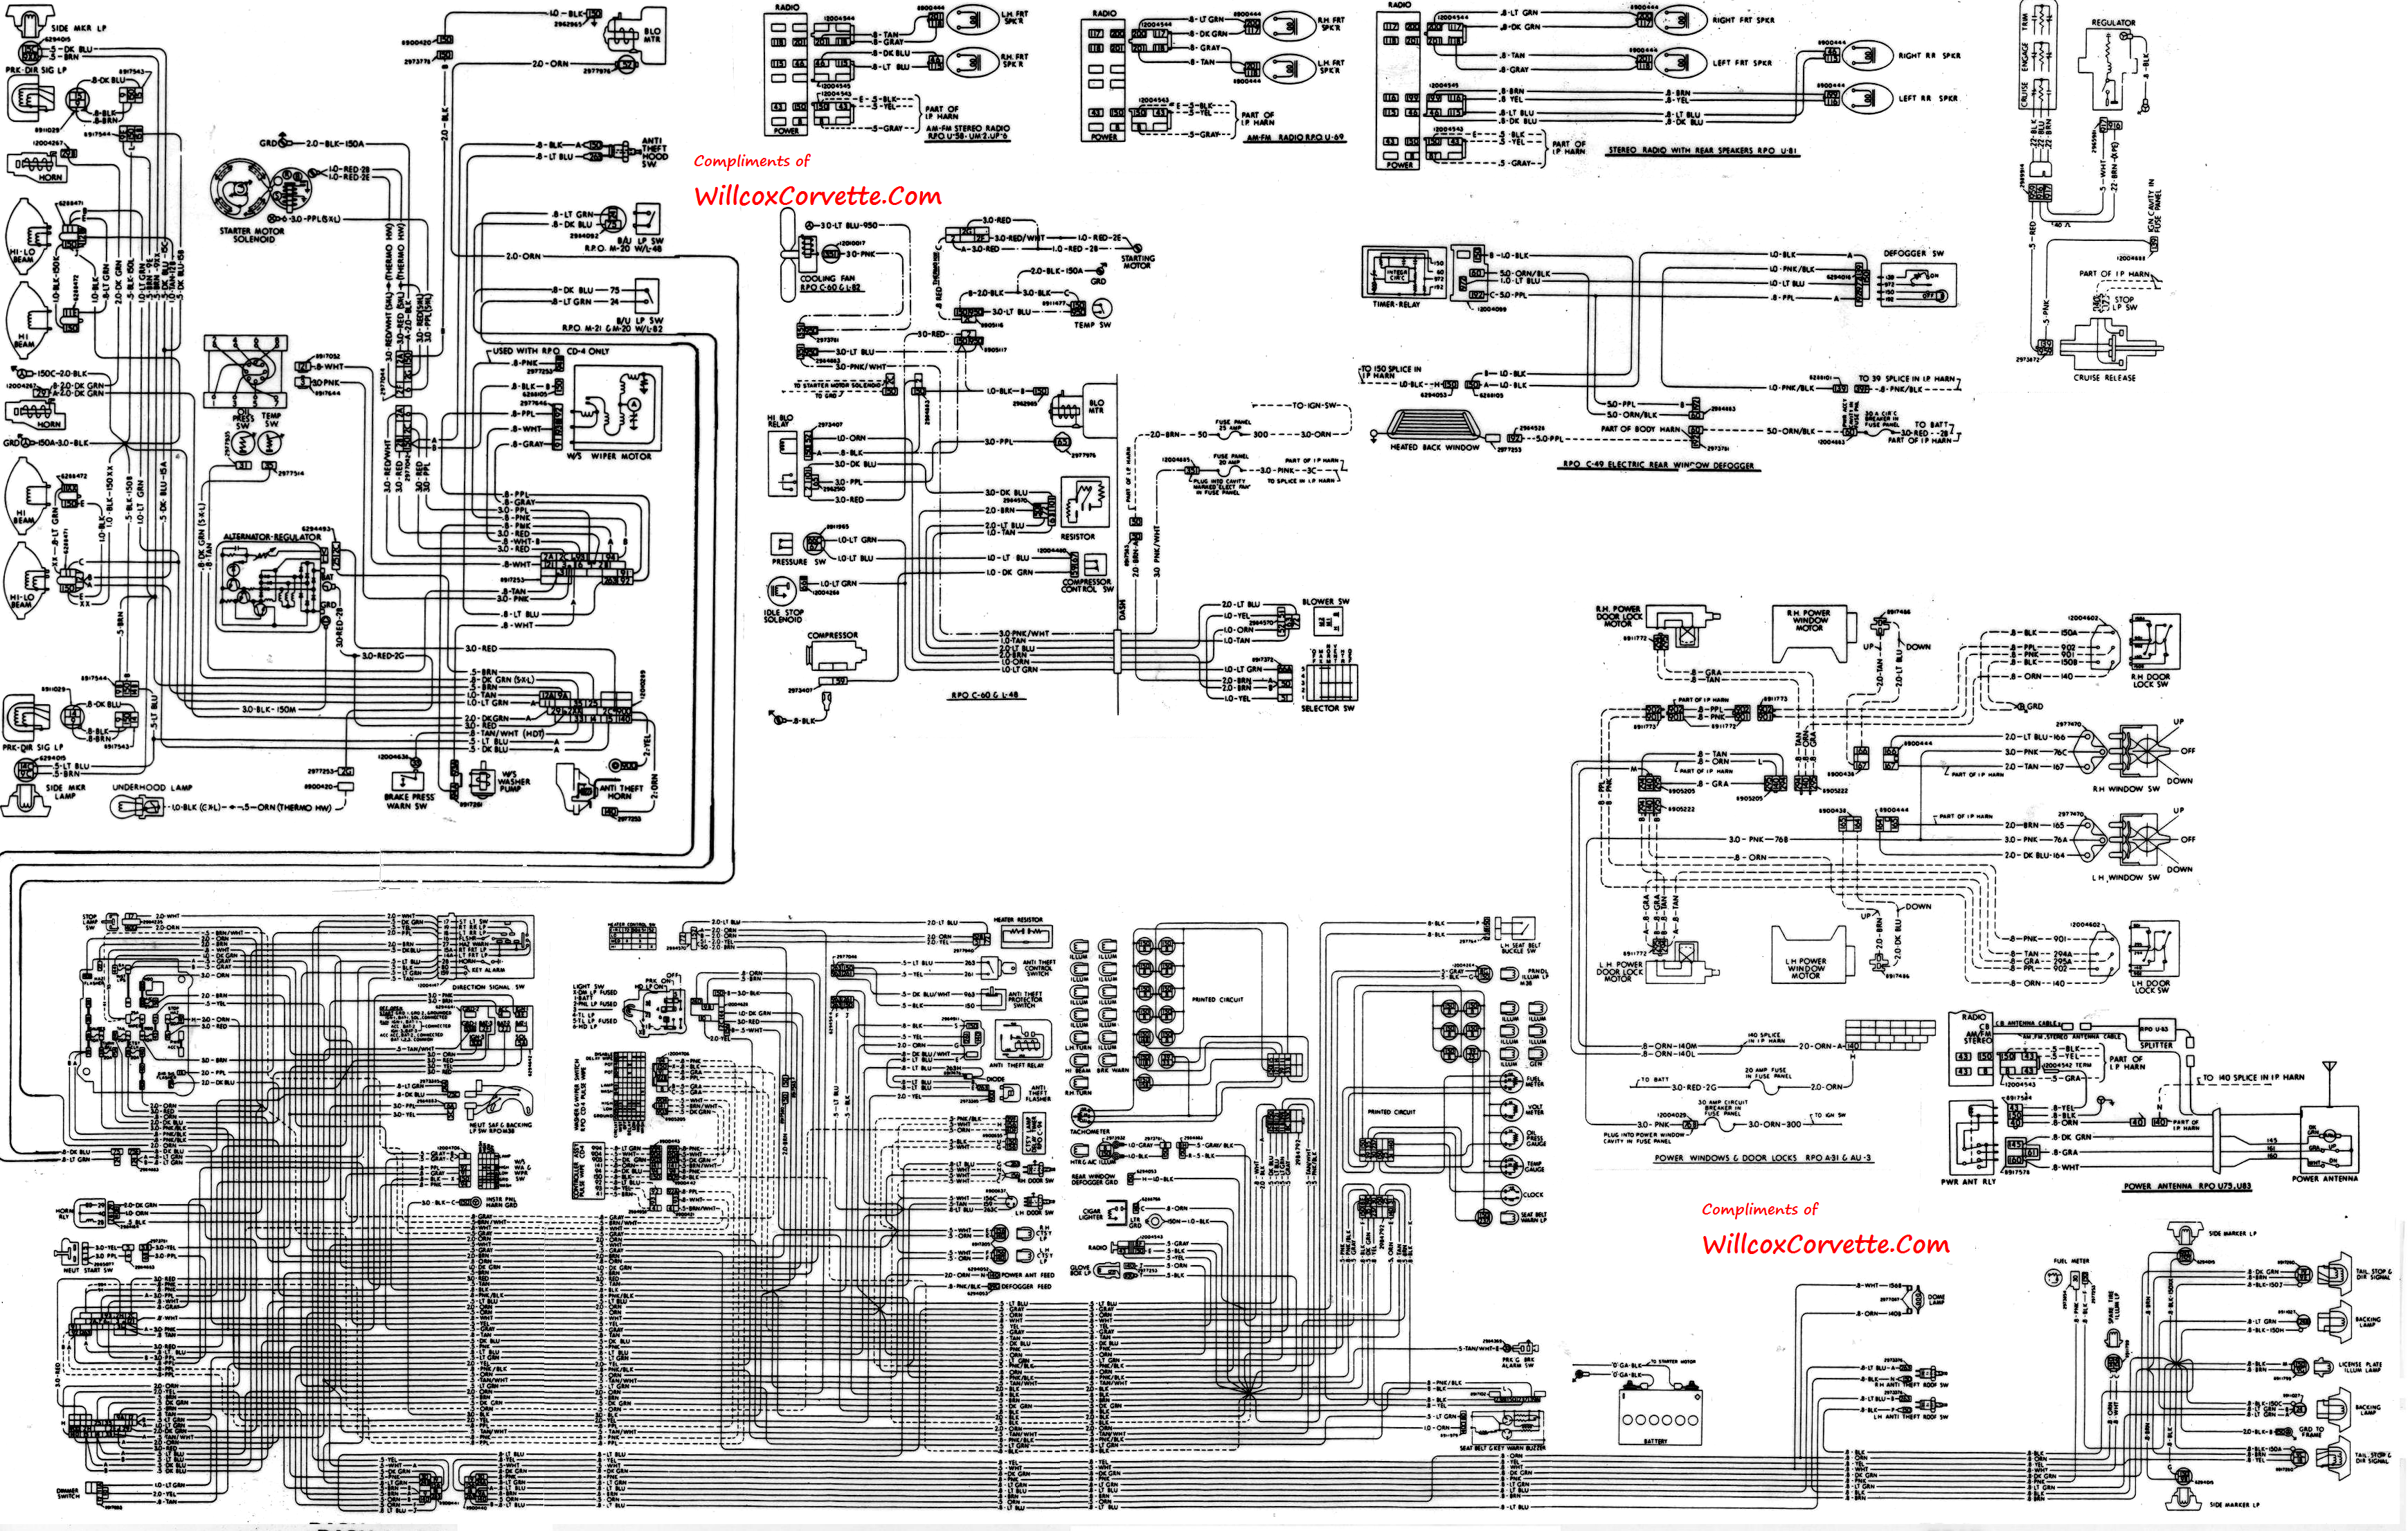 1979 wire diagram 1979 corvette tracer wiring diagram tracer schematic willcox 1969 corvette wiring diagram at edmiracle.co